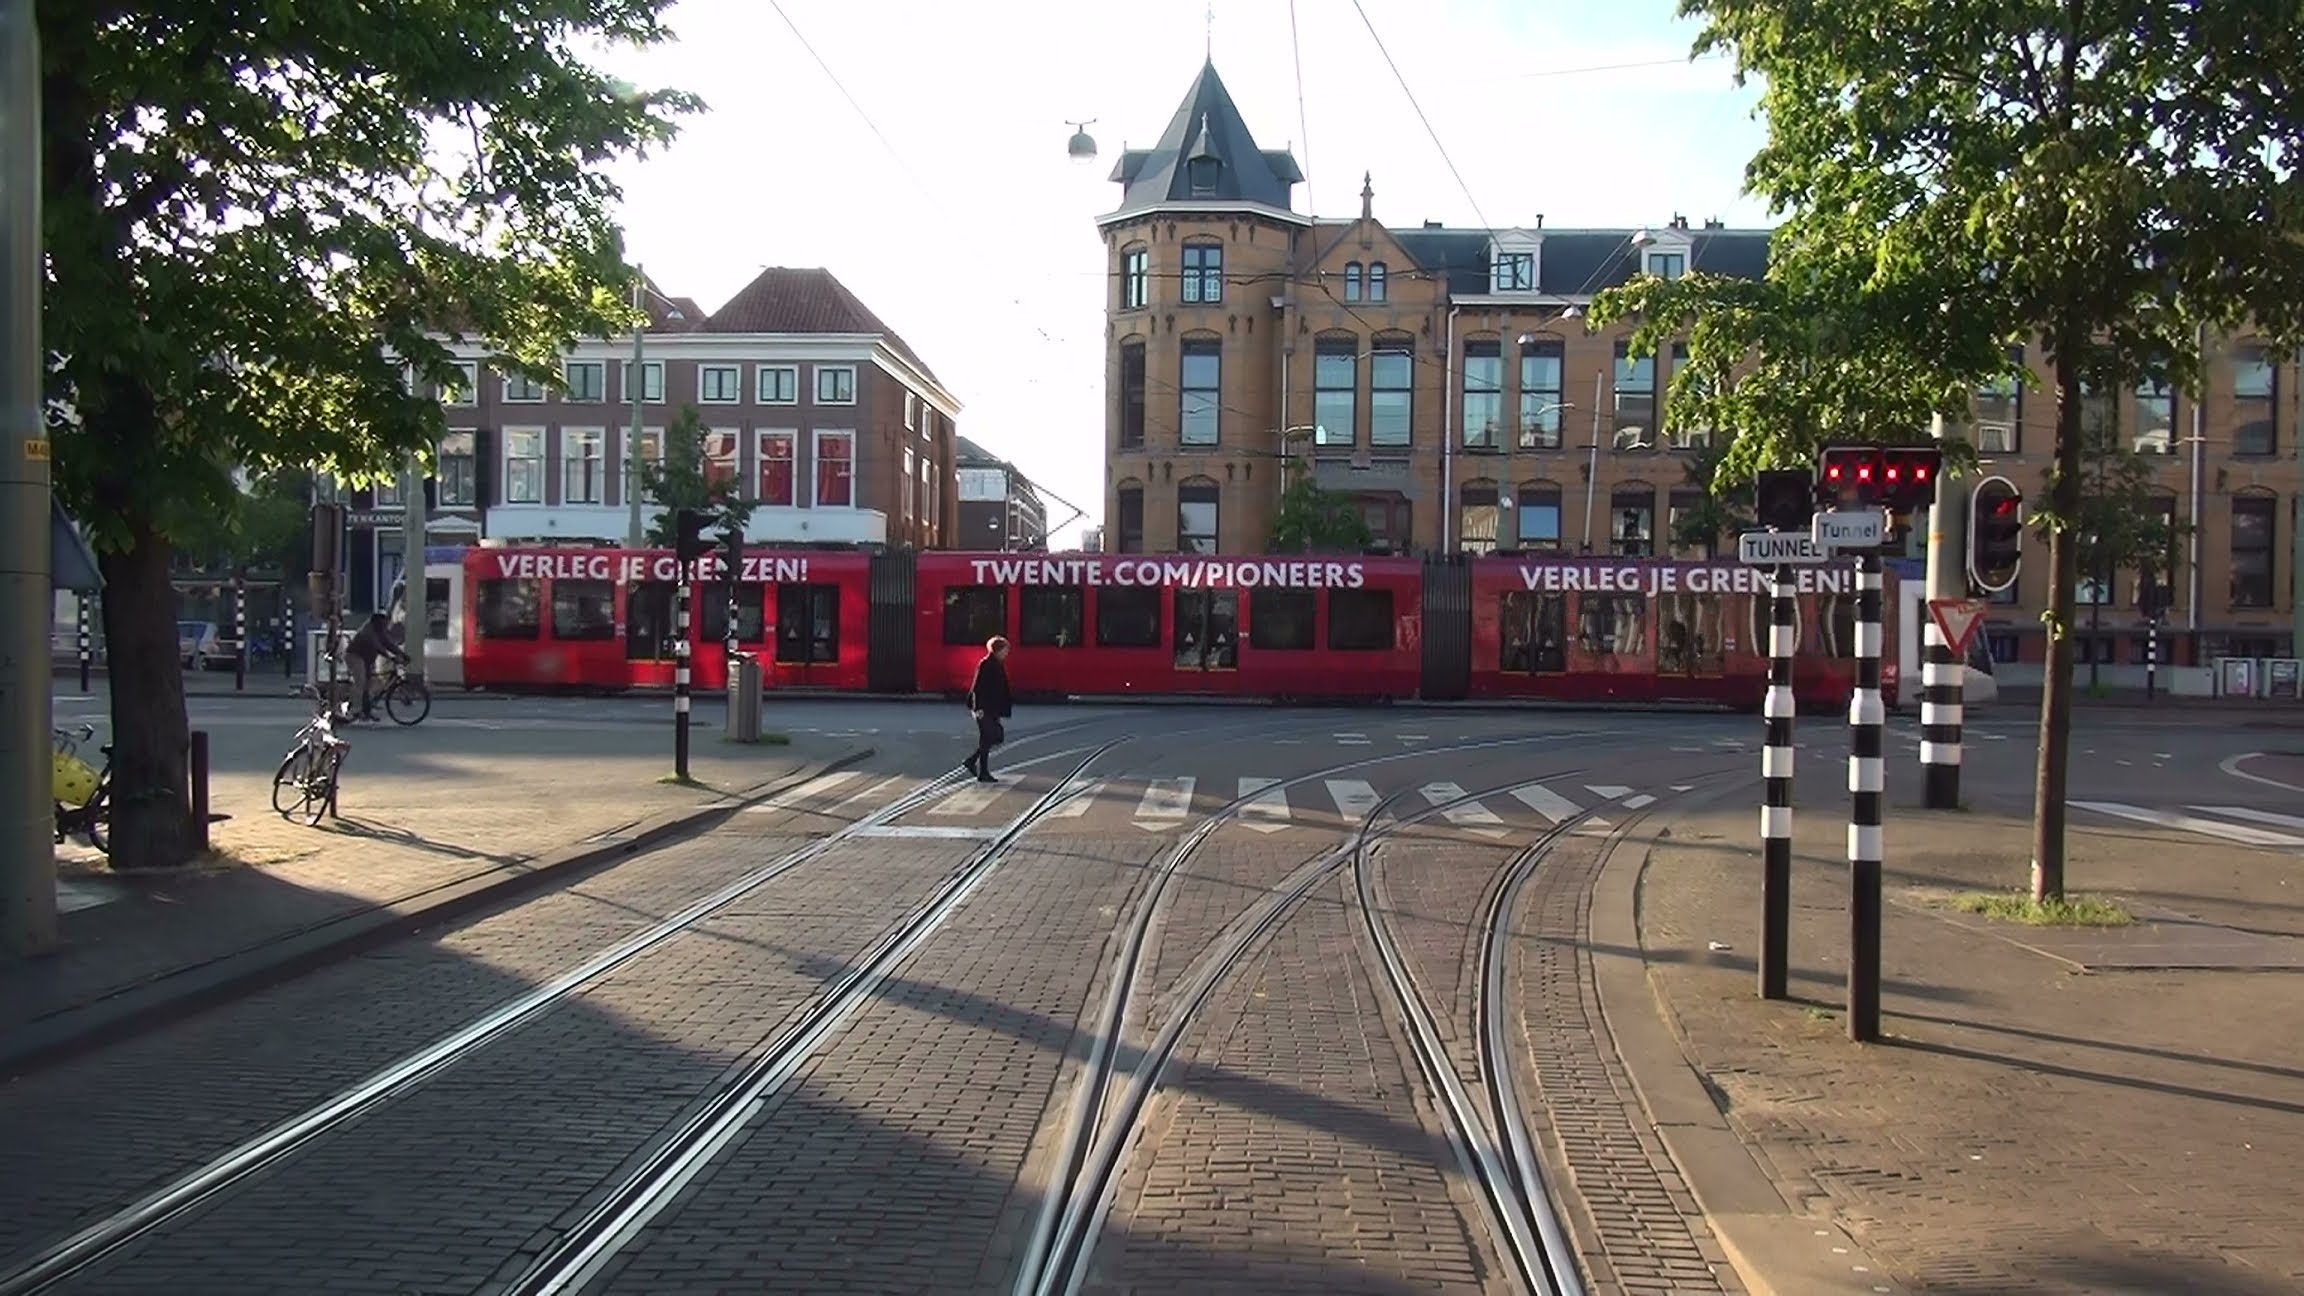 HTM tramlijn 12 Duindorp – Station Hollands Spoor via Hobbemastraat/centrum v.v.